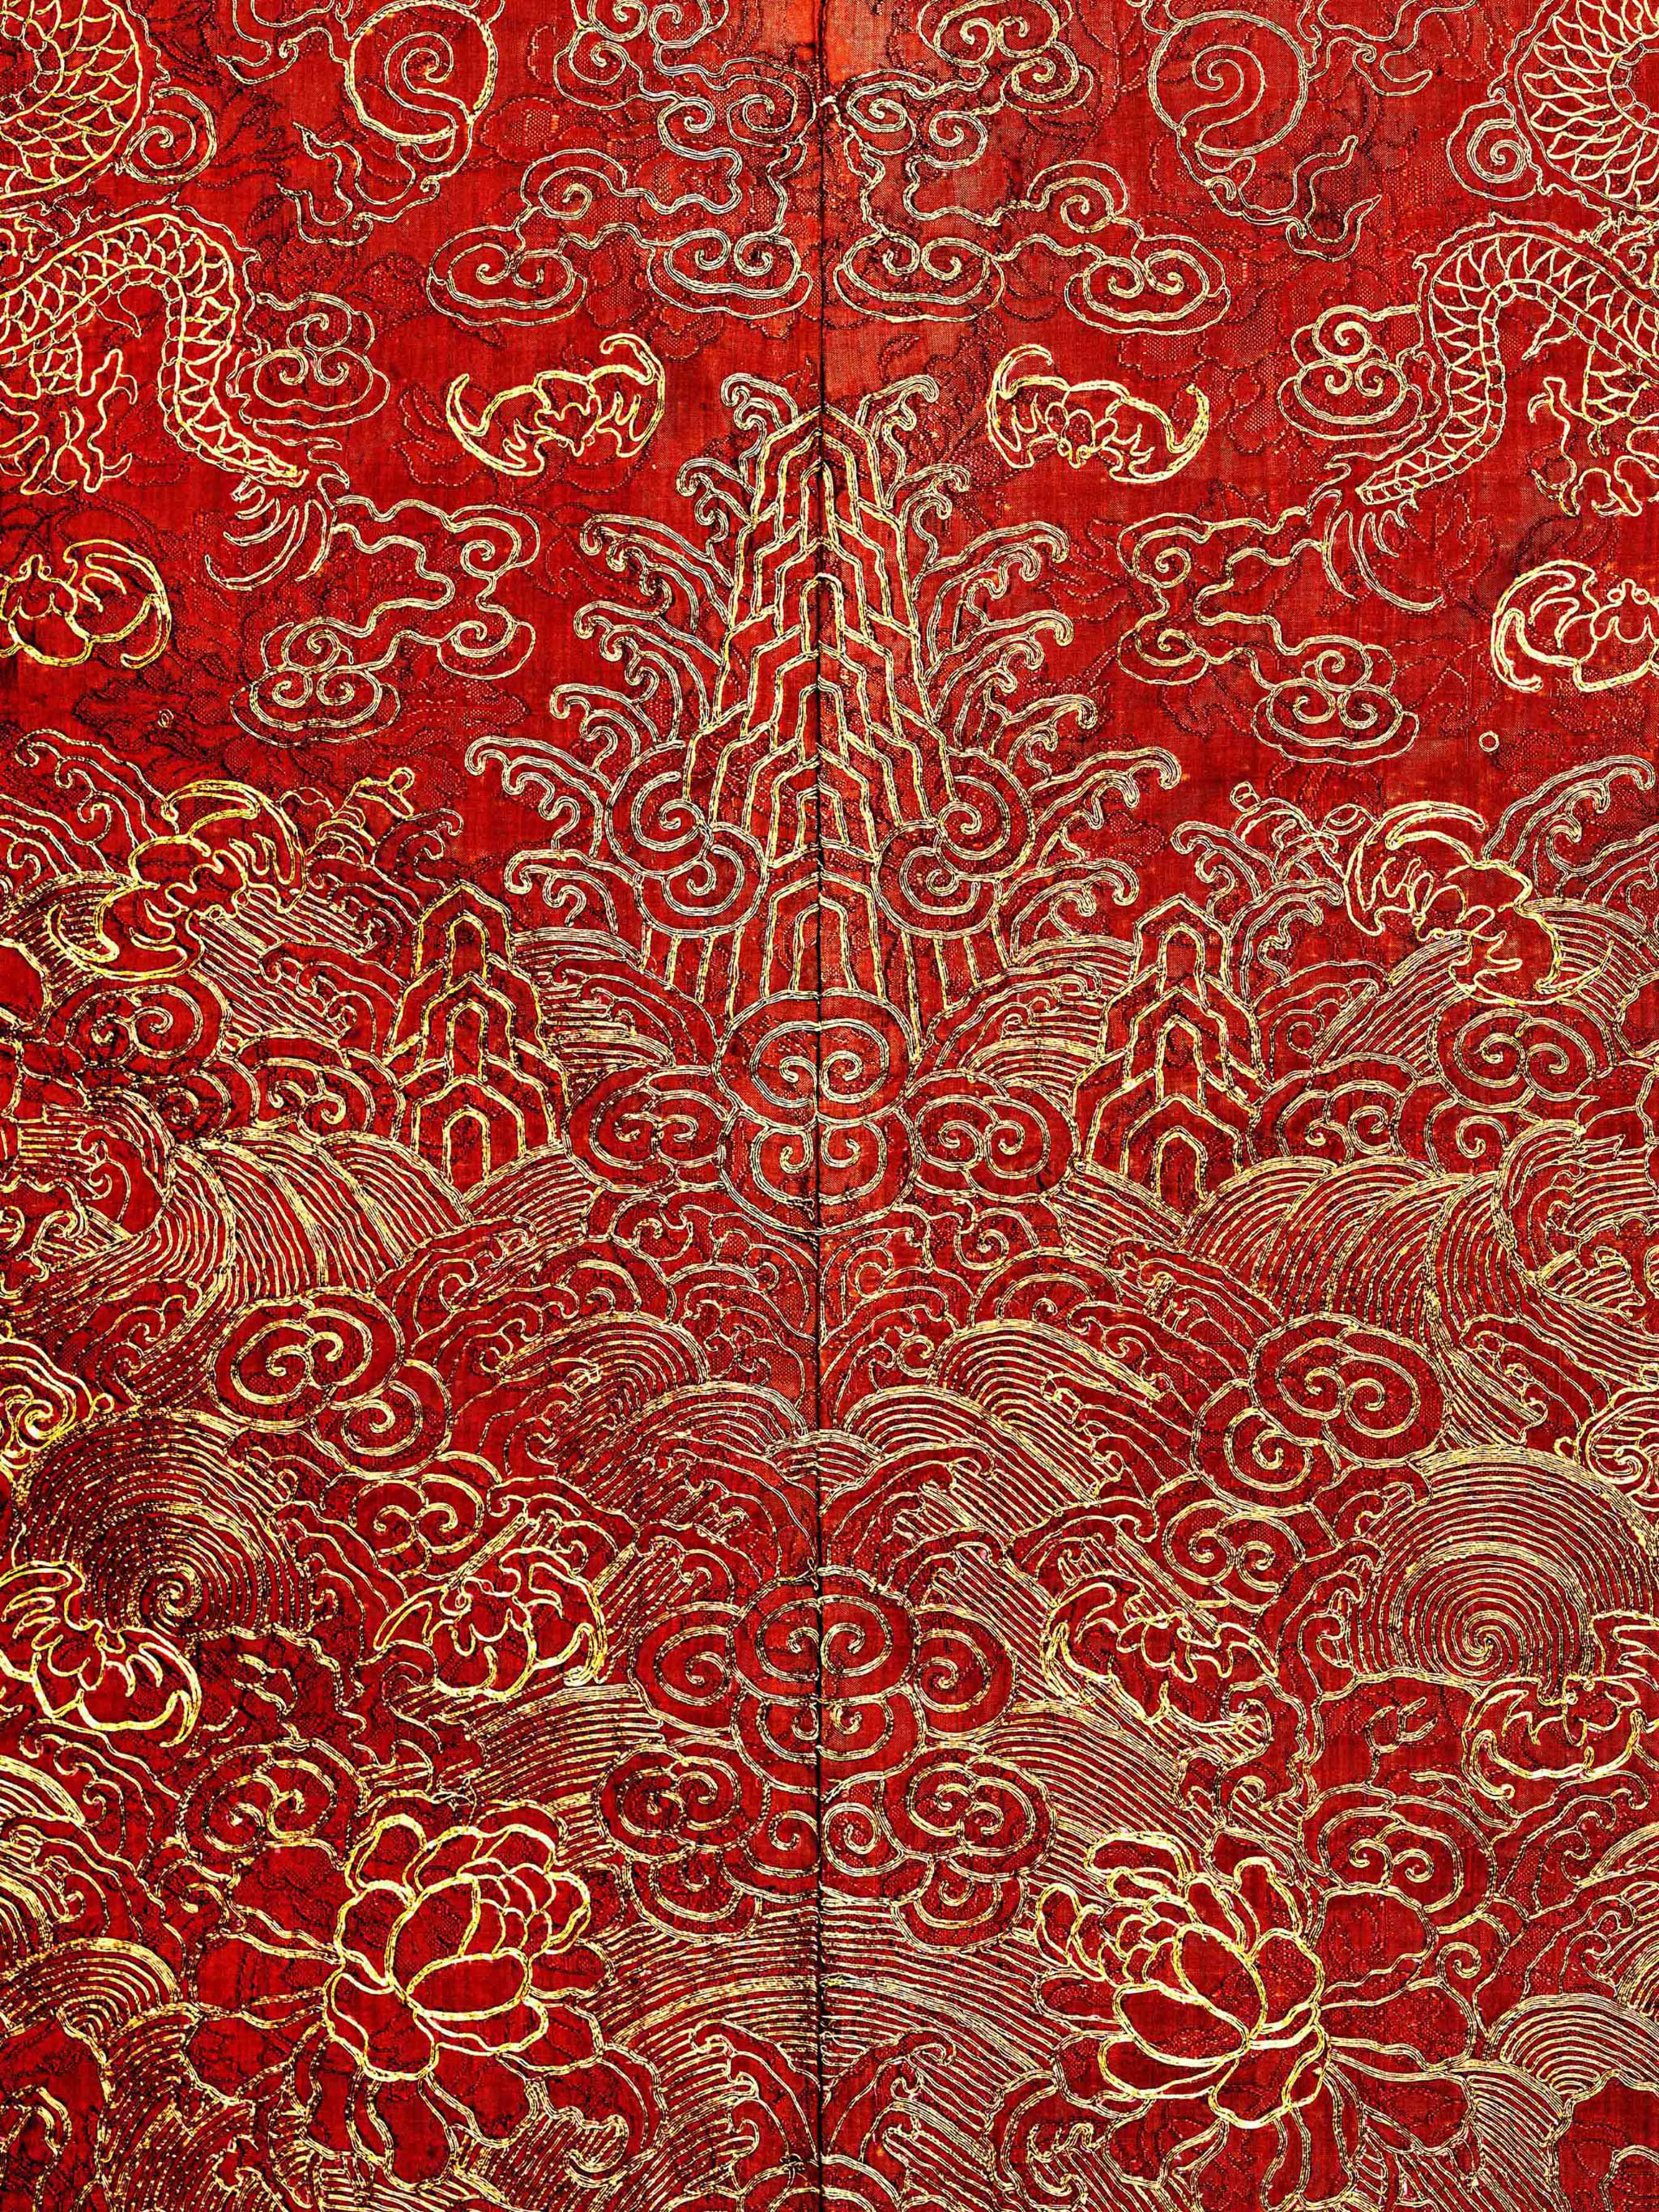 02. Detail of Court Robe (Chinese)